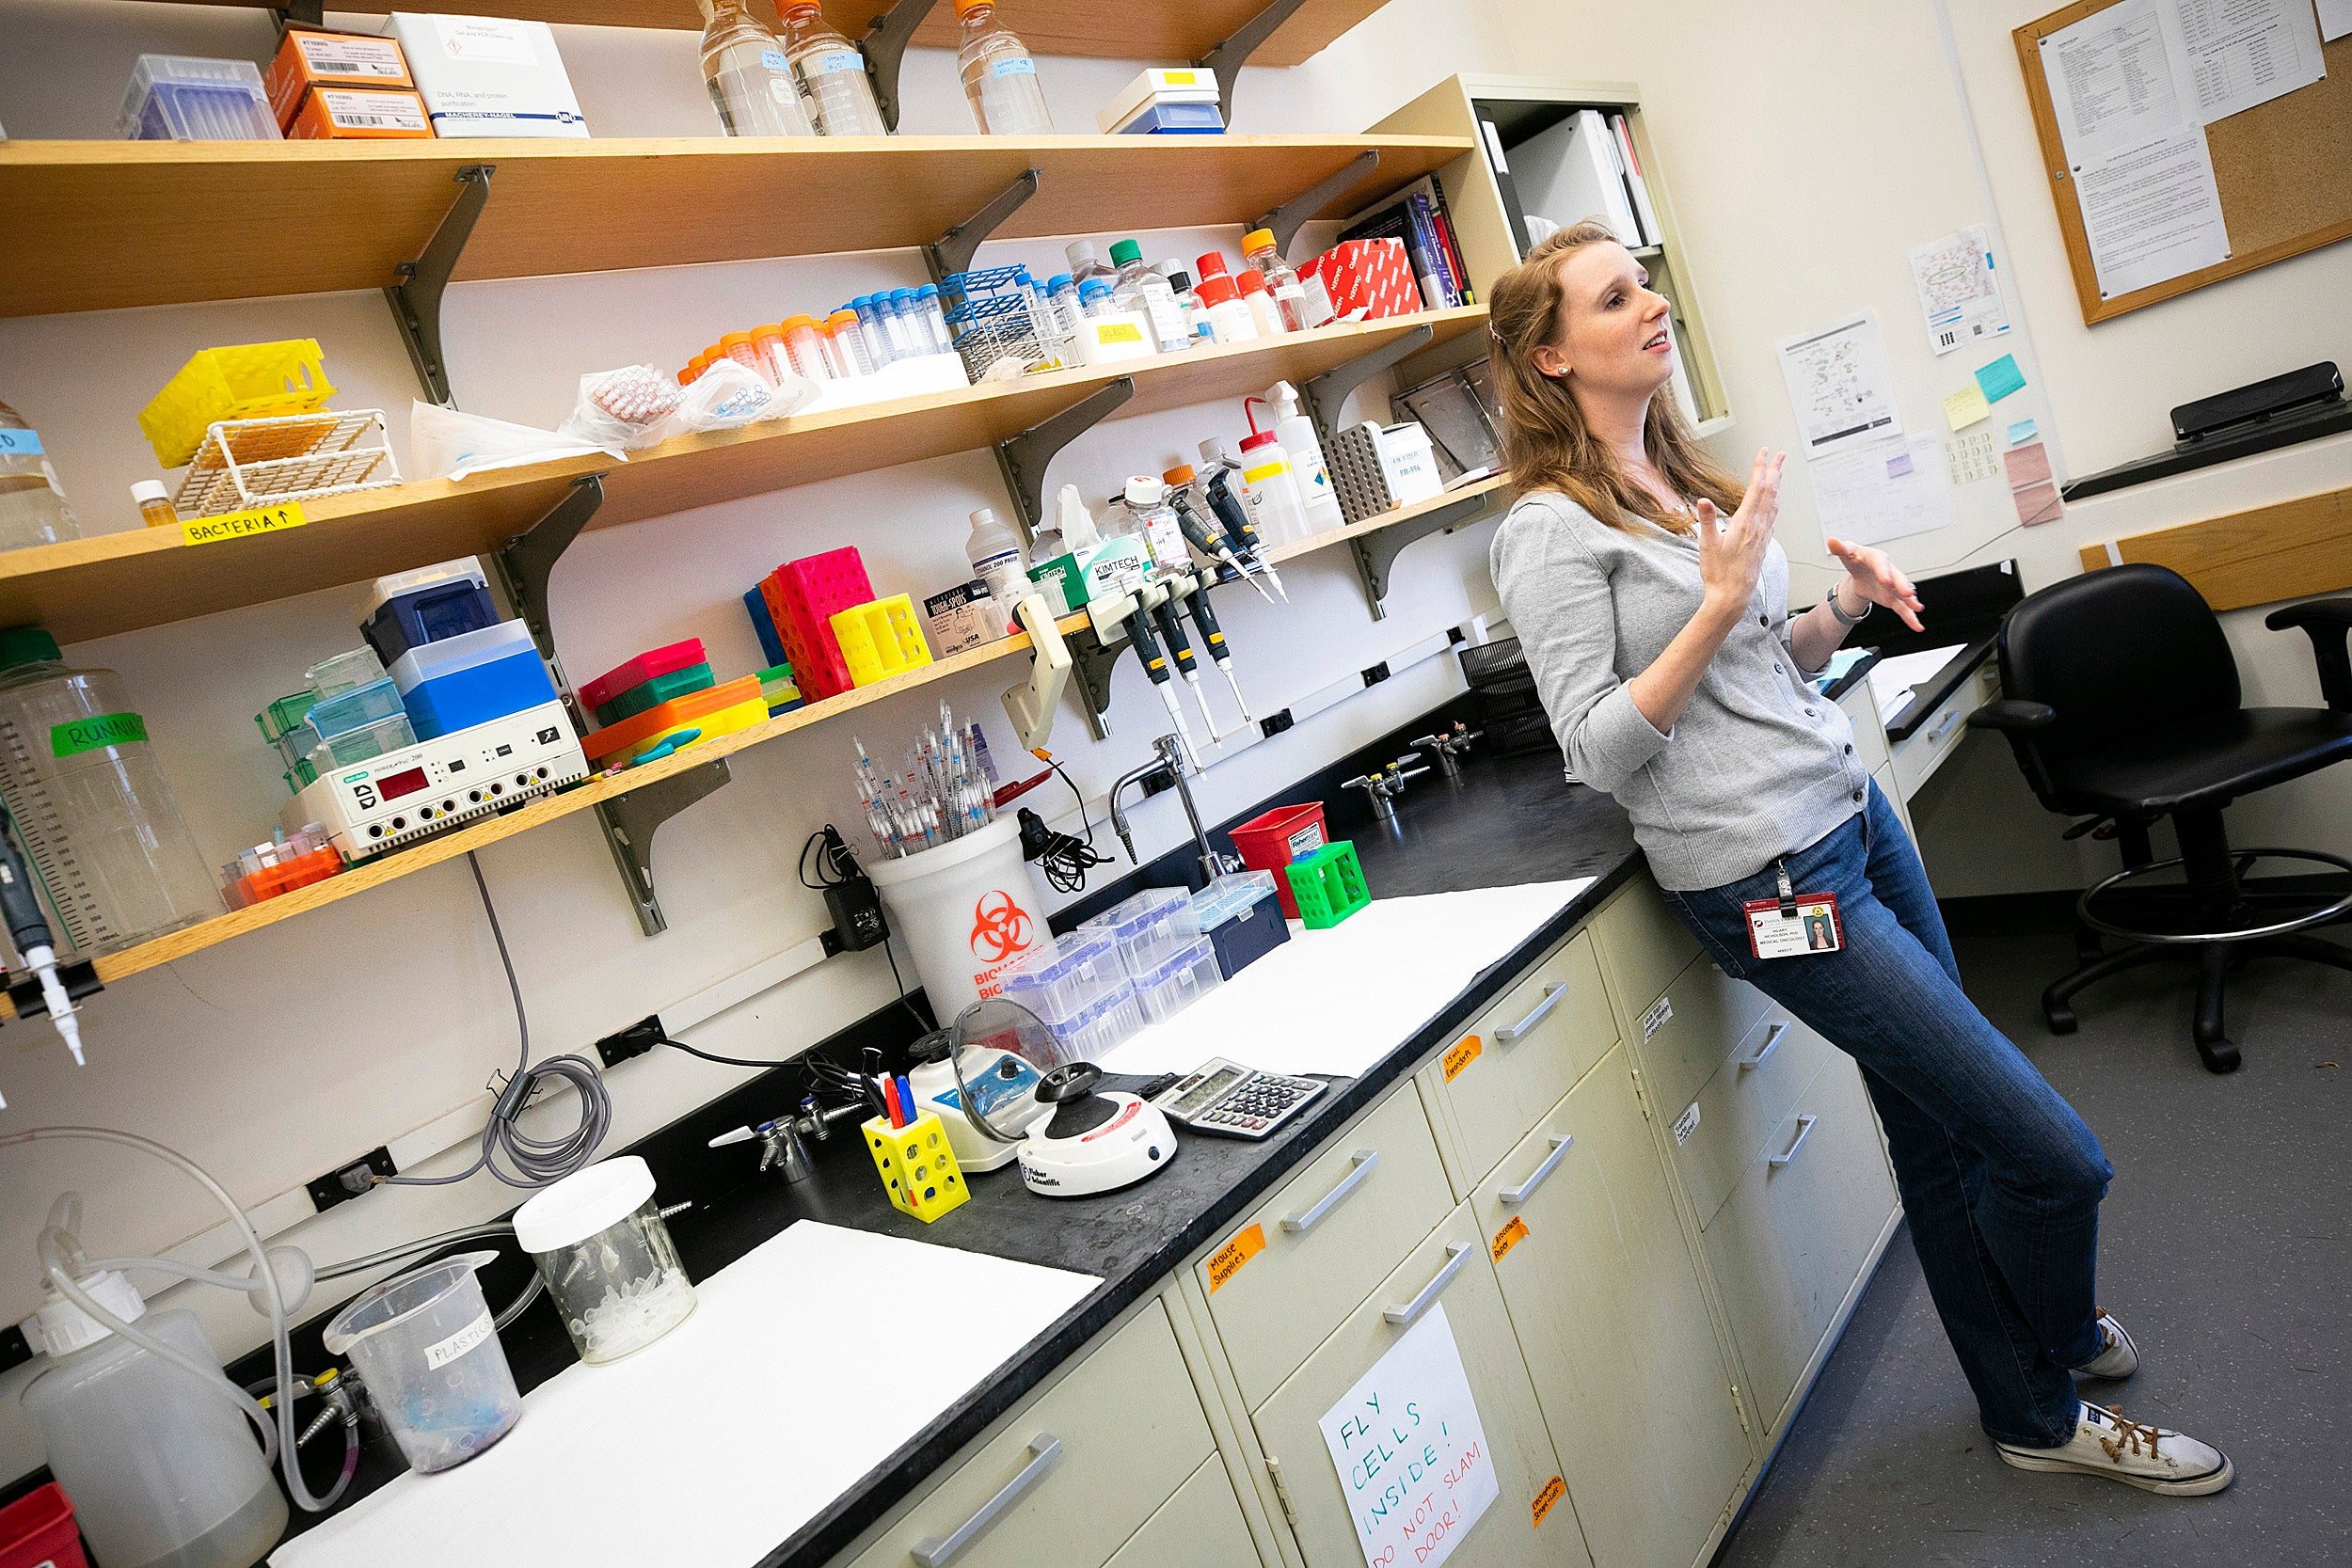 Hilary Nicholson is pictured in Kaelin's lab at Dana-Farber Cancer Institute.